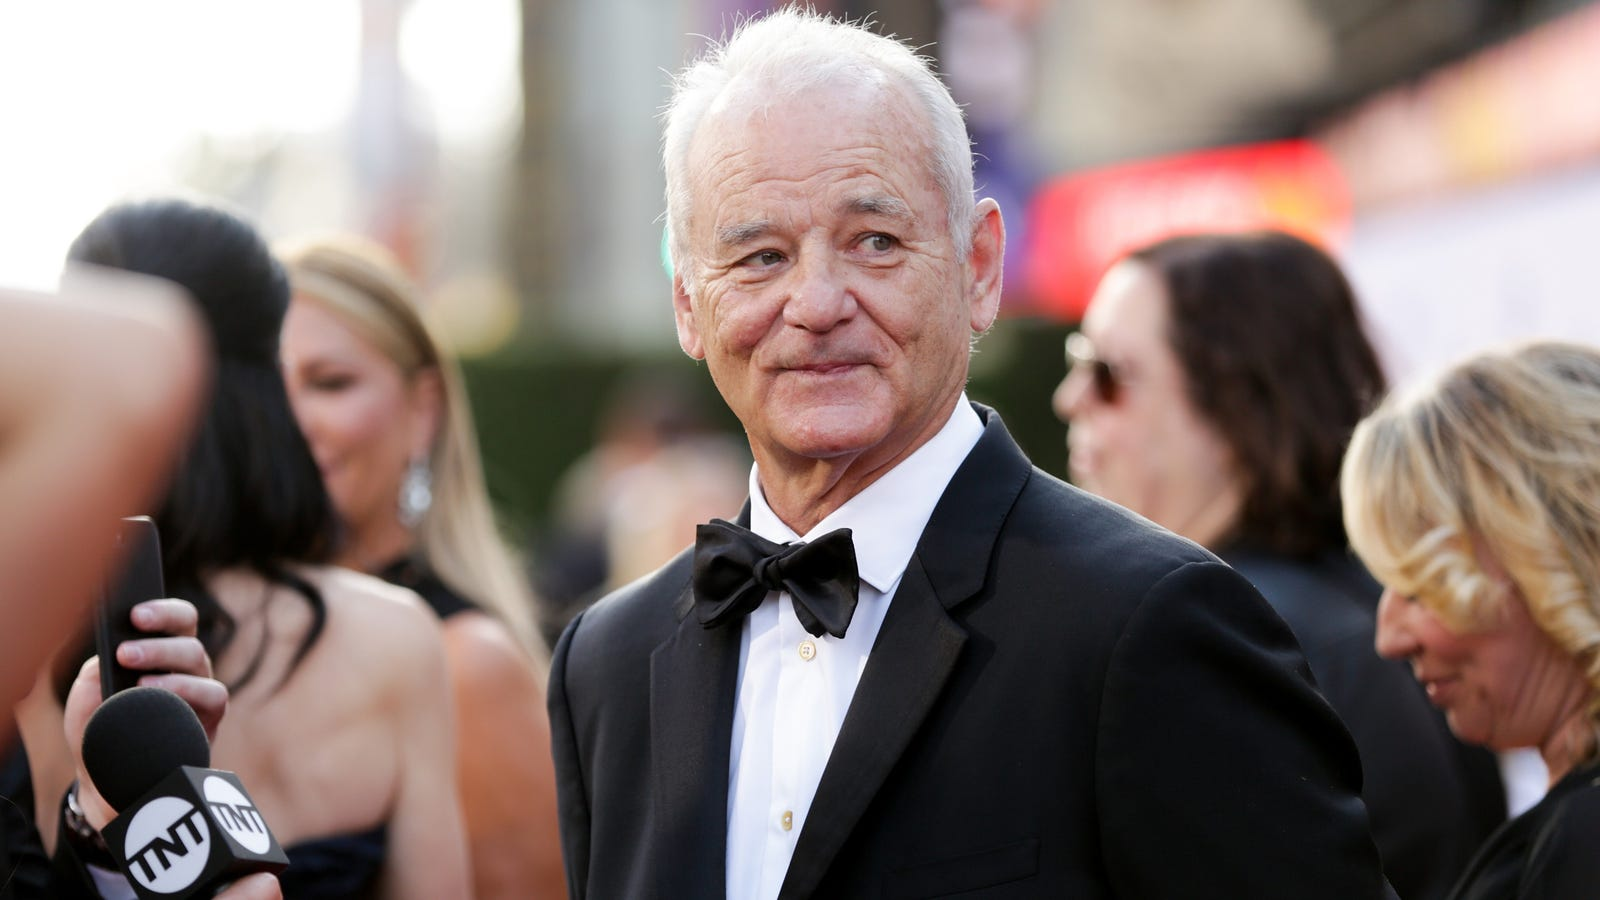 Having already made vampires hip, Jim Jarmusch is taking on zombies with Bill Murray